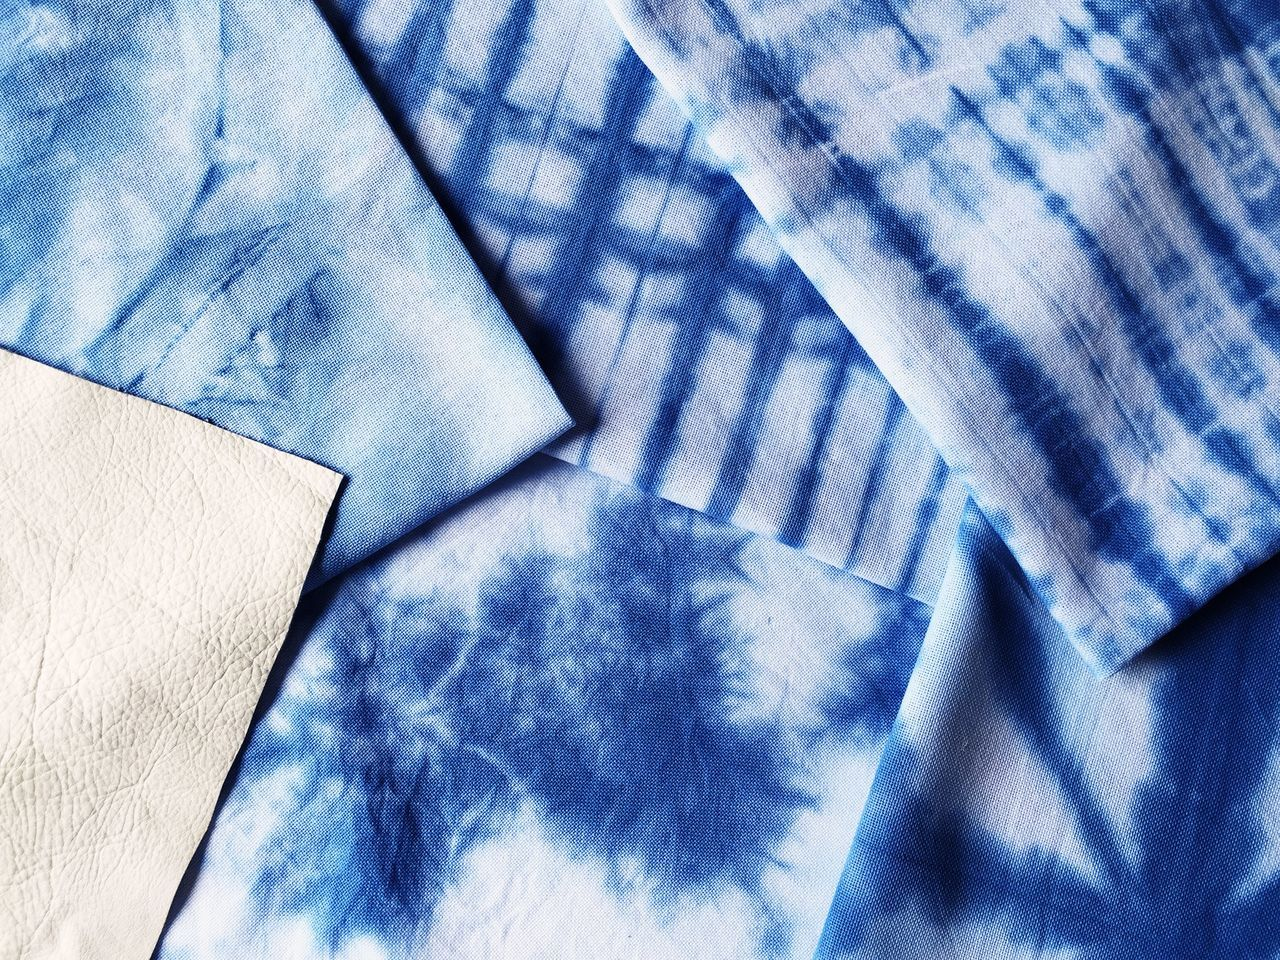 Blue Close-up Crafts Design Fabric Hand Dyed Minimalism Pattern Shibori Textile